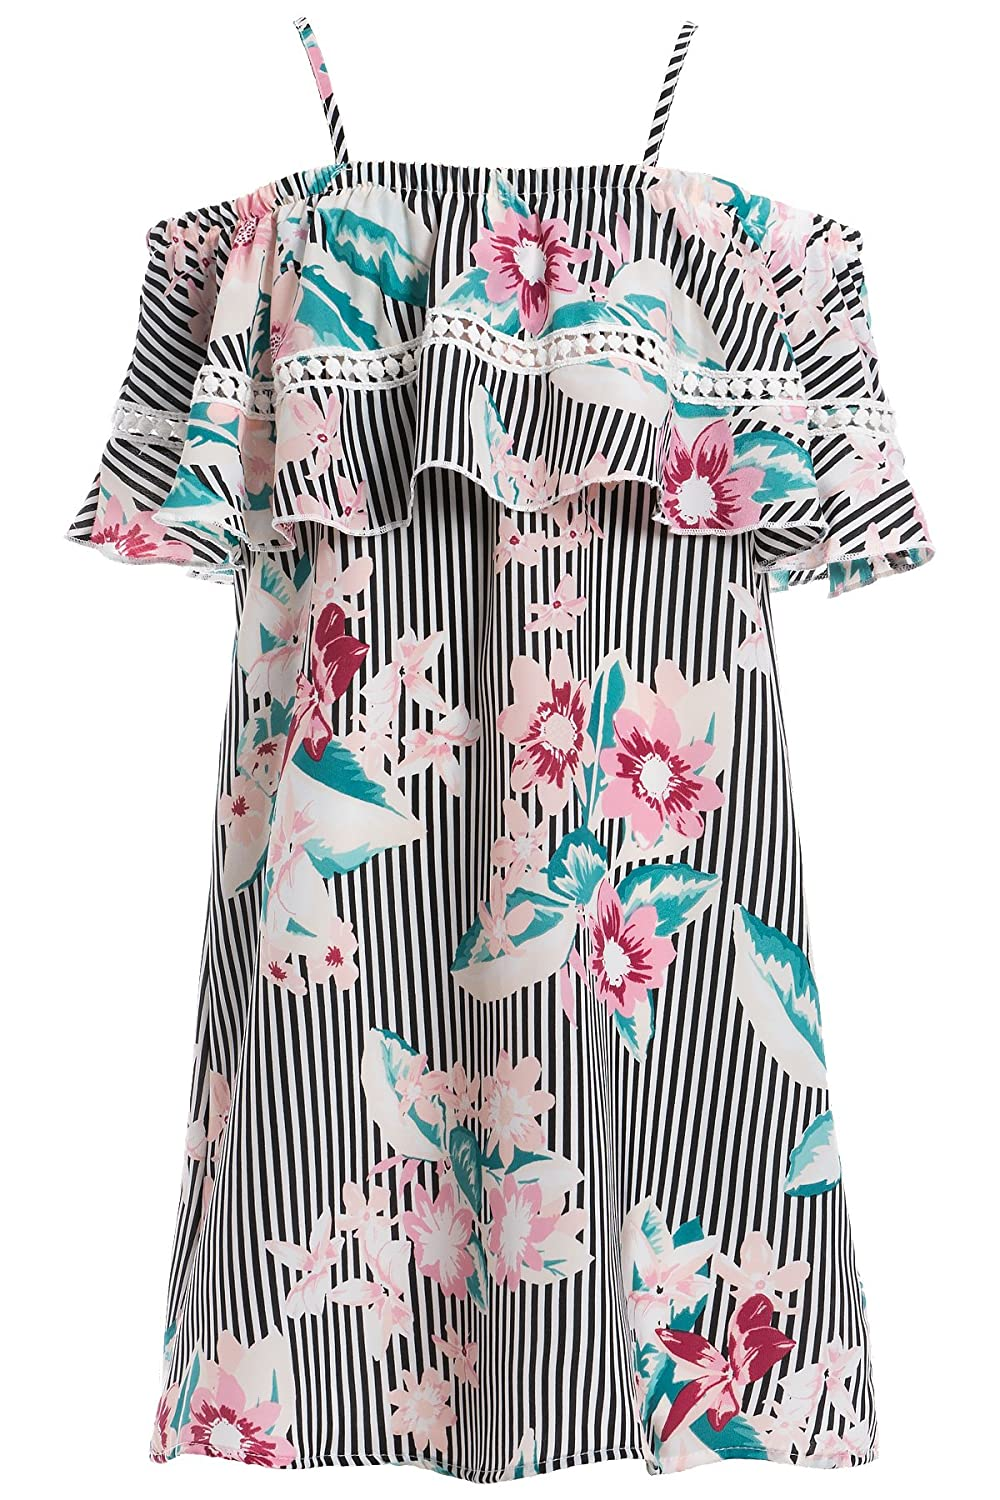 7d0aa4e6f Her wardrobe offers affordable casual to semi-dressy options that are  easily dressed UP or DOWN. Designs are smart and charming.